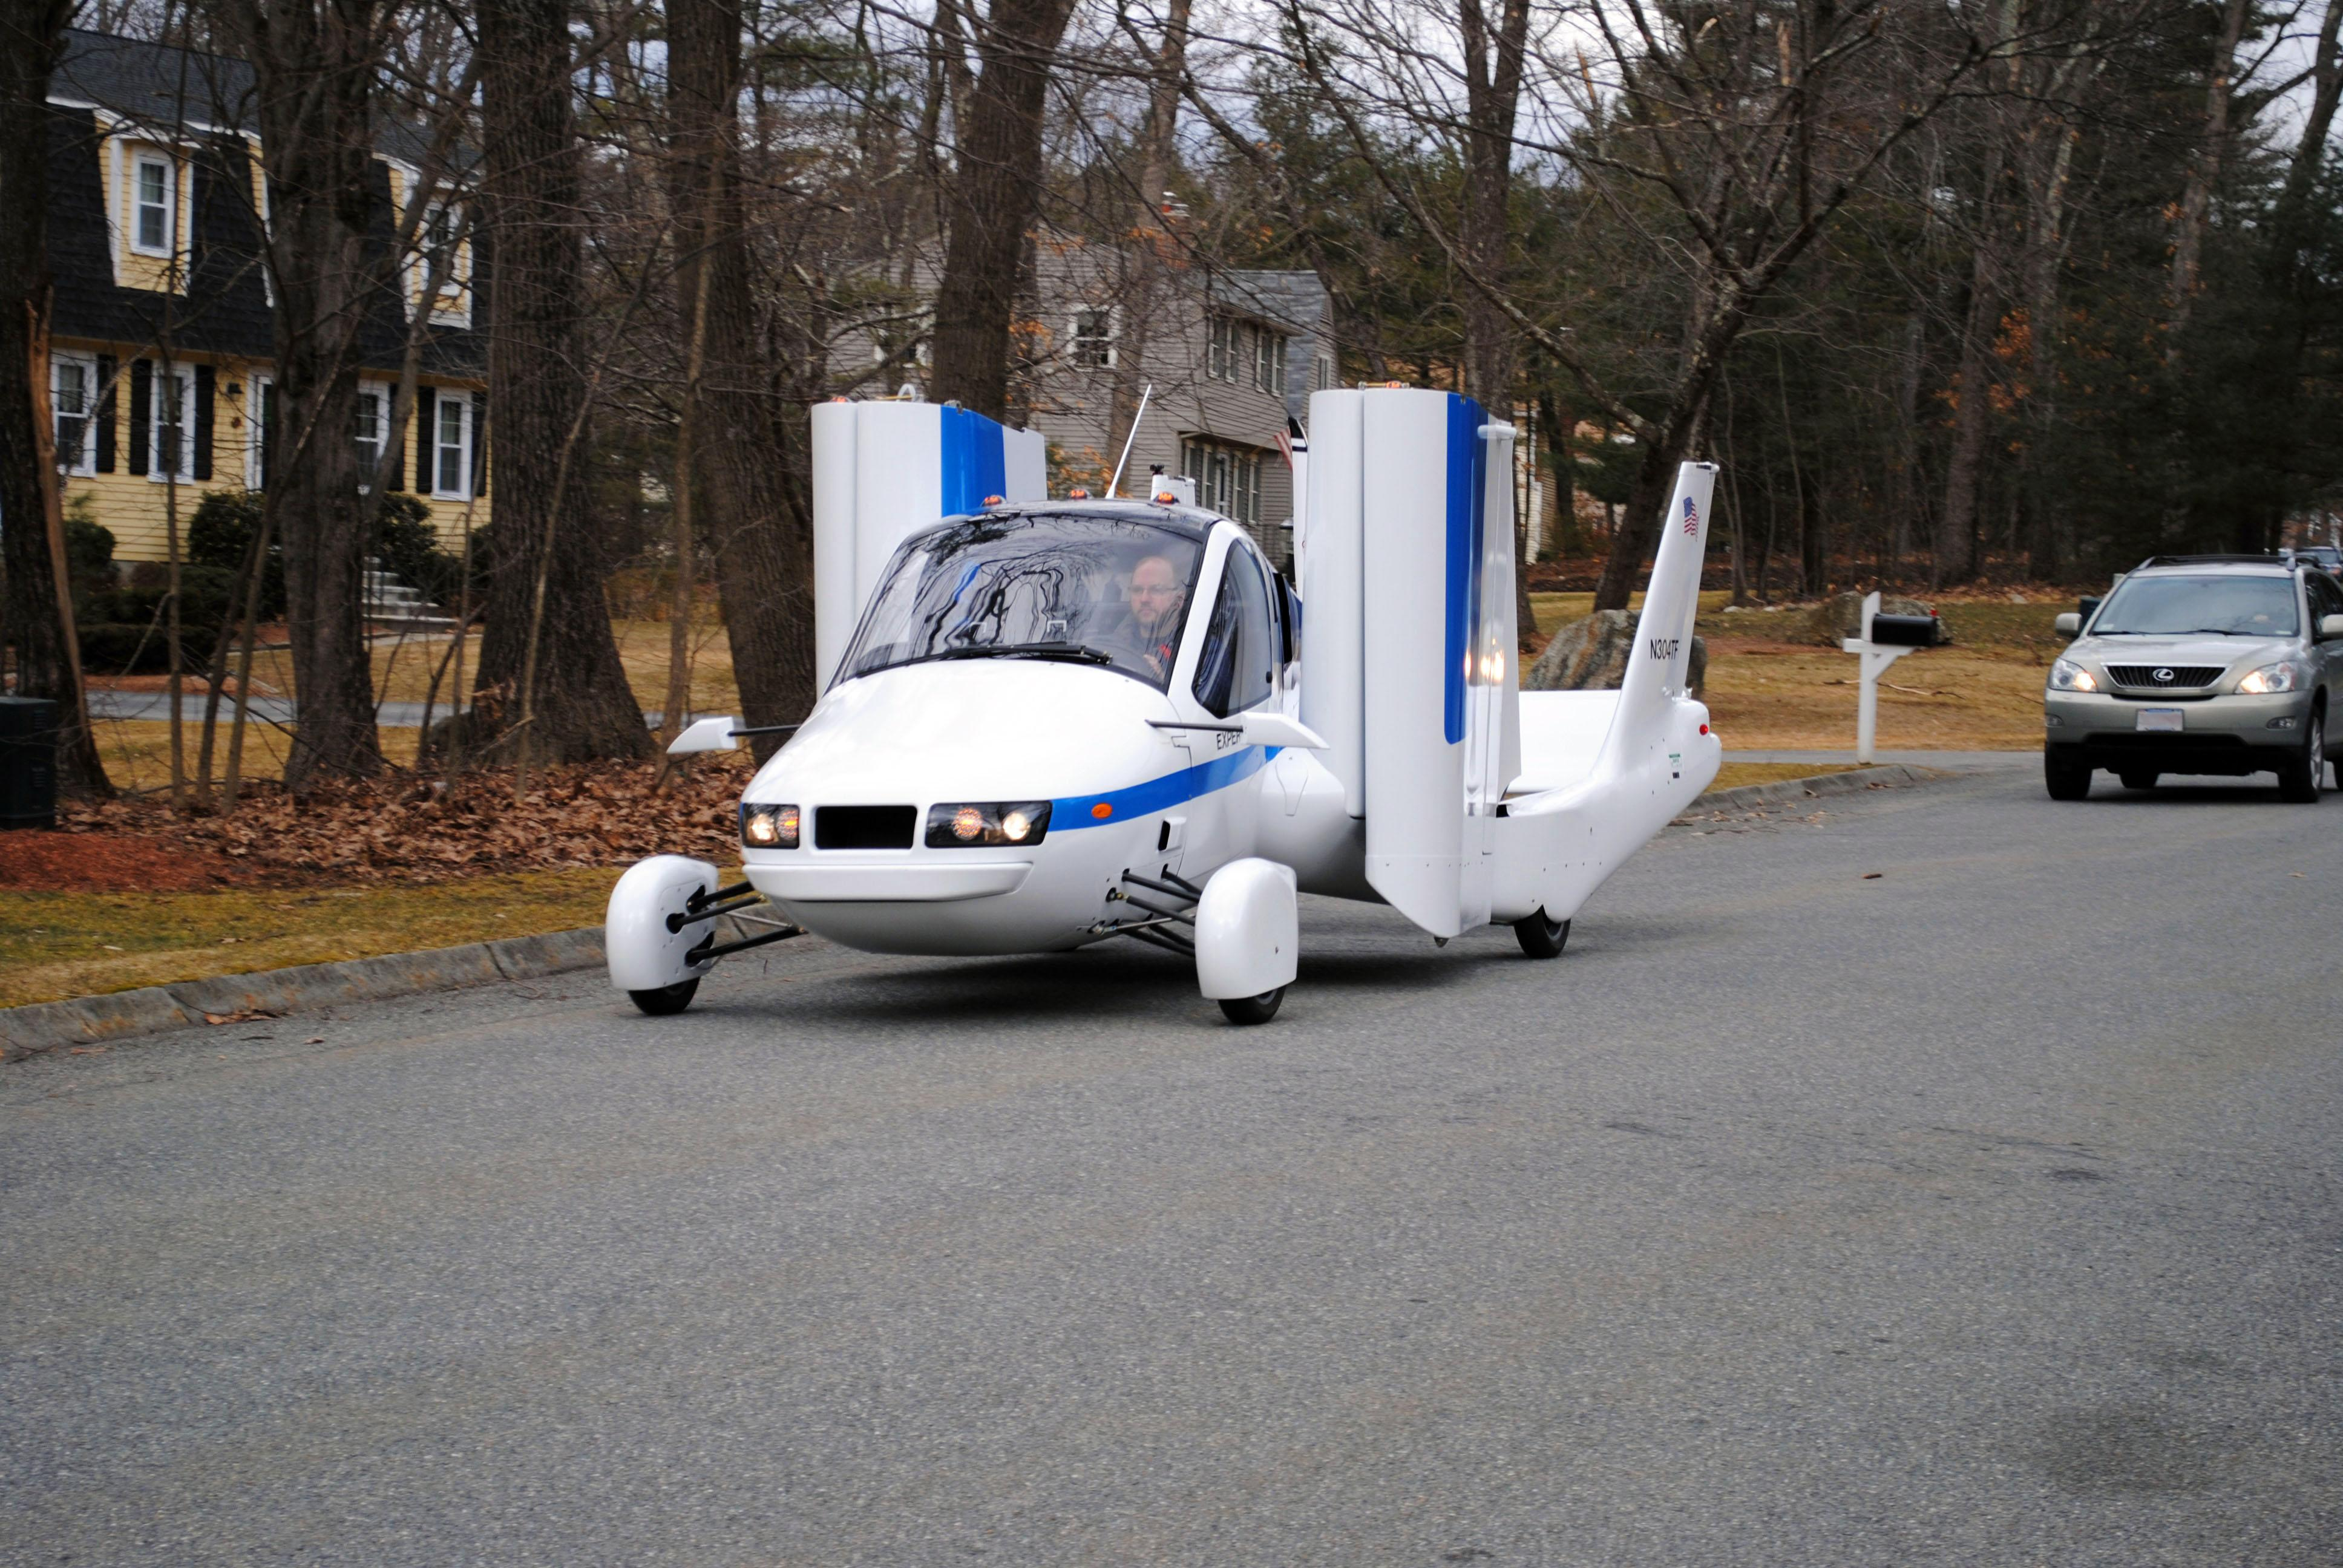 In this undated photo provided by Terrafugia Inc., the company's prototype flying car, dubbed the Transition, travels down a street with its wings folded. The vehicle has two seats, four wheels and wings that fold up so it can be driven like a car, and flew at 1,400 feet for eight minutes during its test flight on March 23, 2012. Commercial jets fly at 35,000 feet. (AP Photo/Terrafugia.com) MANDATORY CREDIT